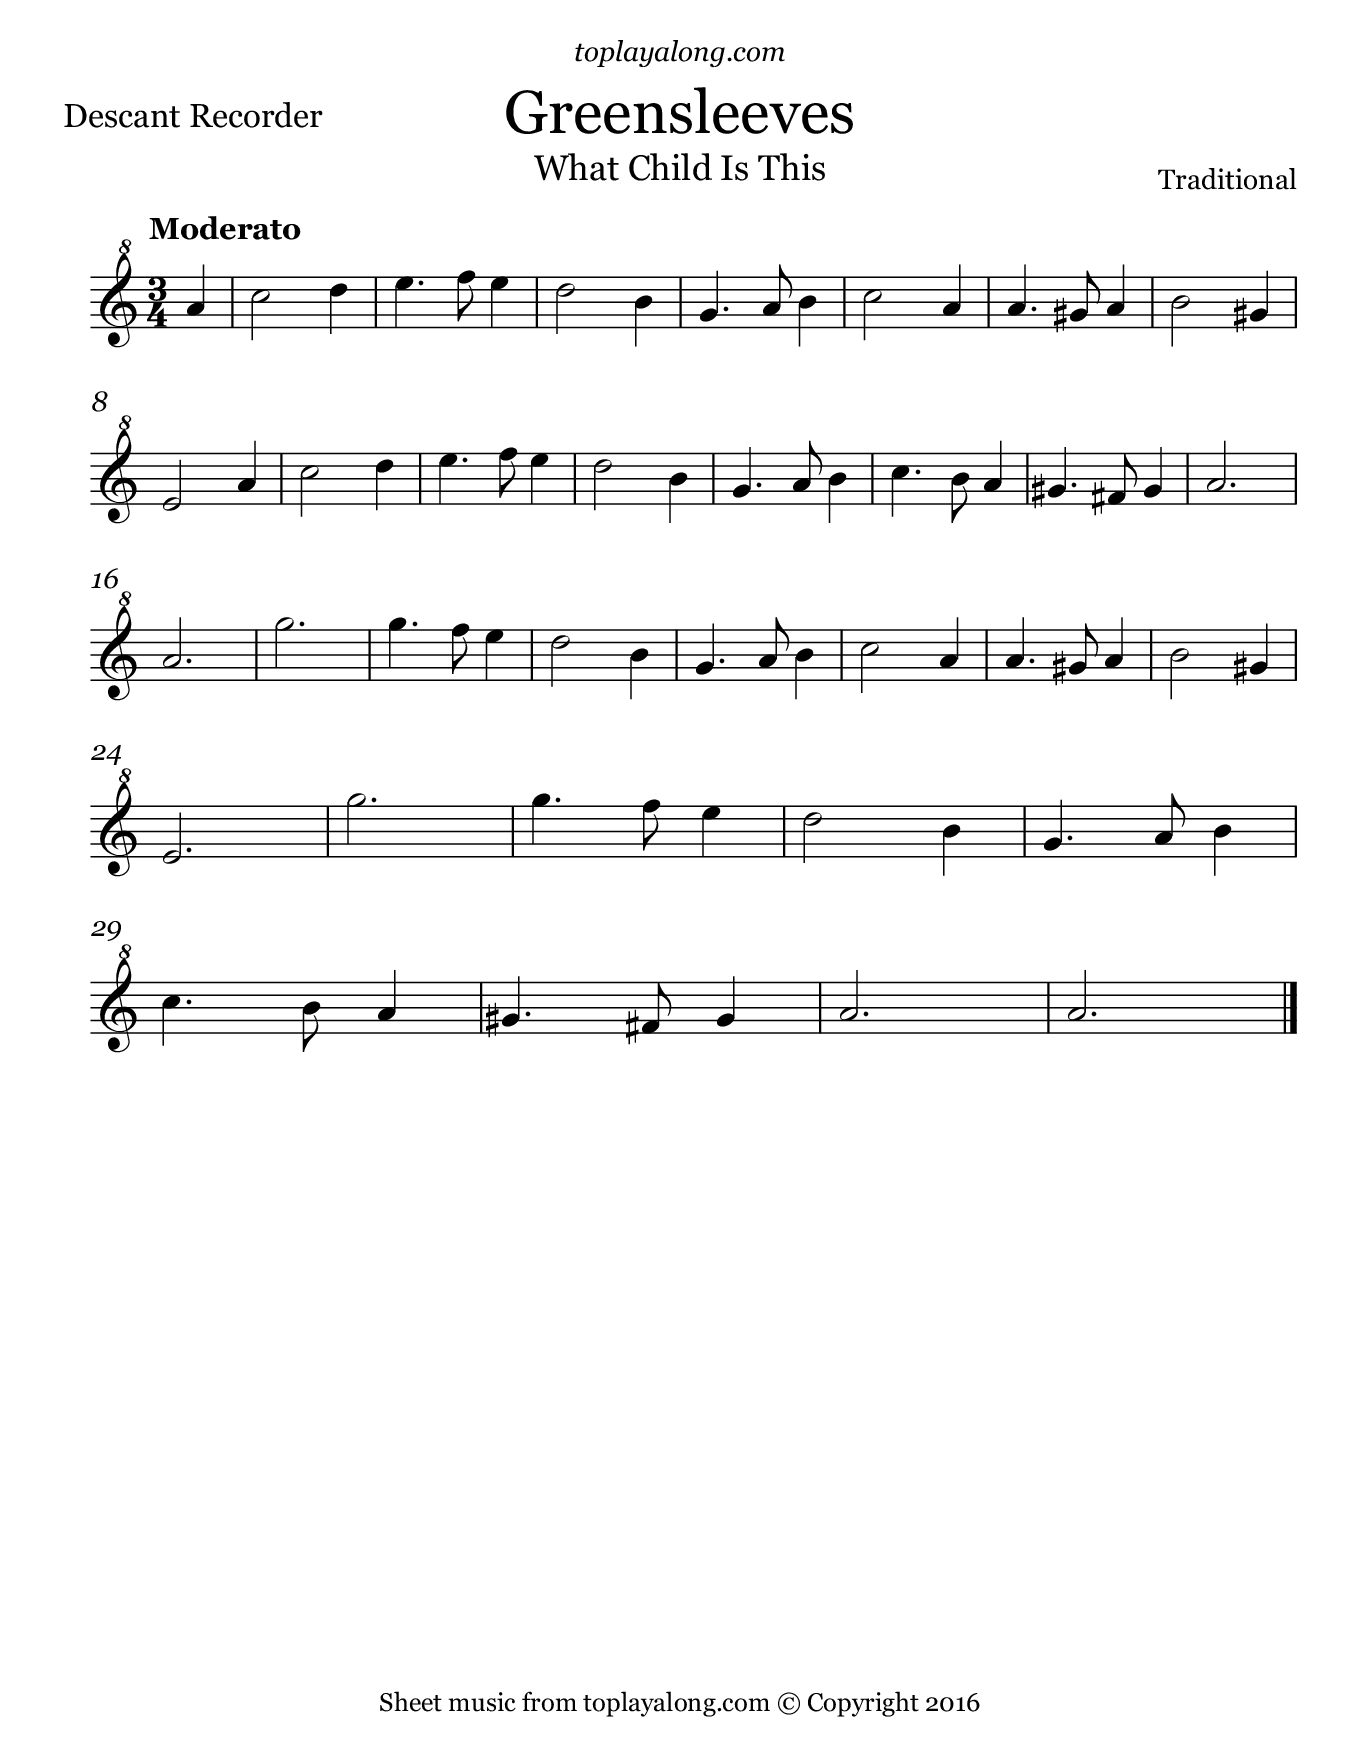 Greensleeves. Sheet music for Recorder, page 1.